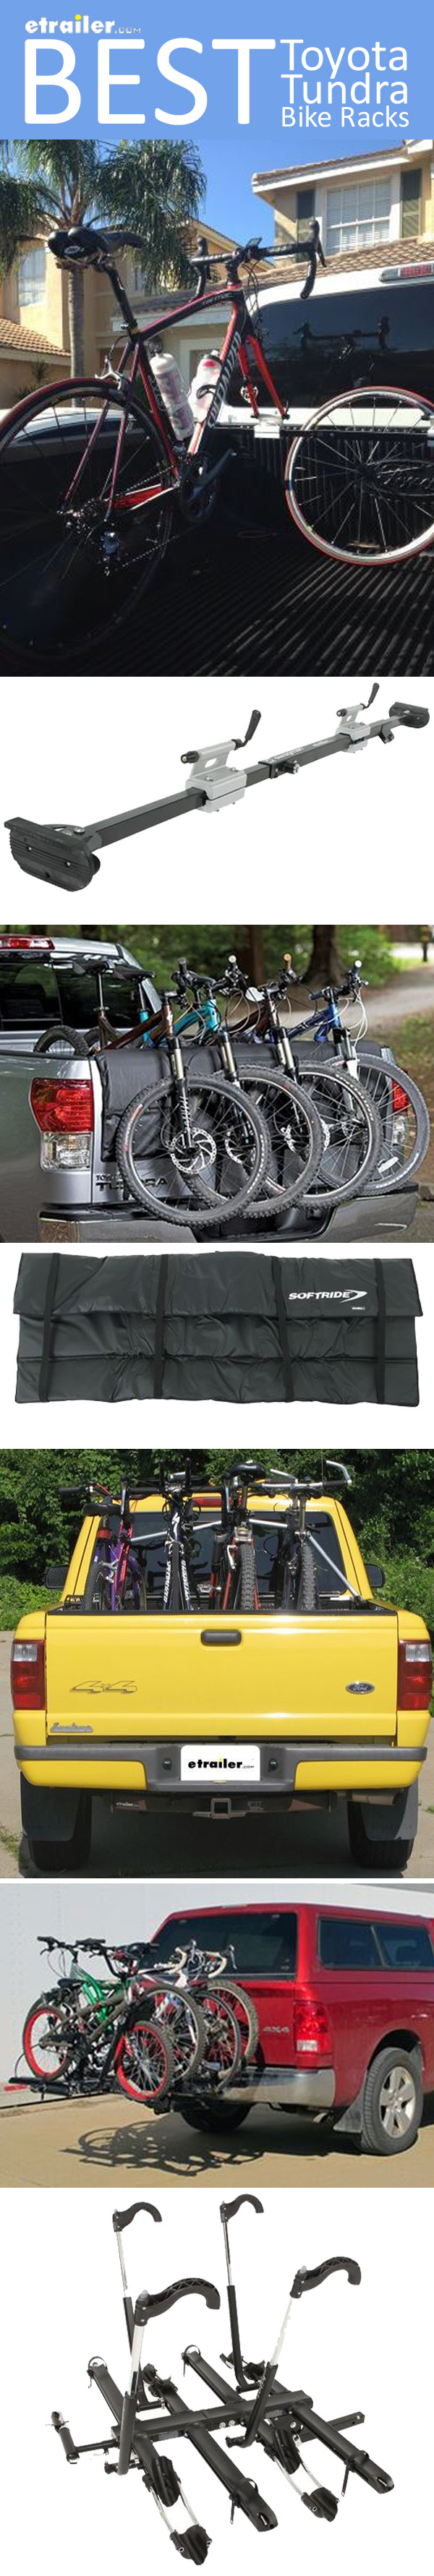 Find The Best Bike Rack For Your Toyota Tundra Truck Bed Mounted Tailgate Pad Bike Carrier Hitch Mounted Bike Racks We Have The Toyota Tundra Tundra Toyota